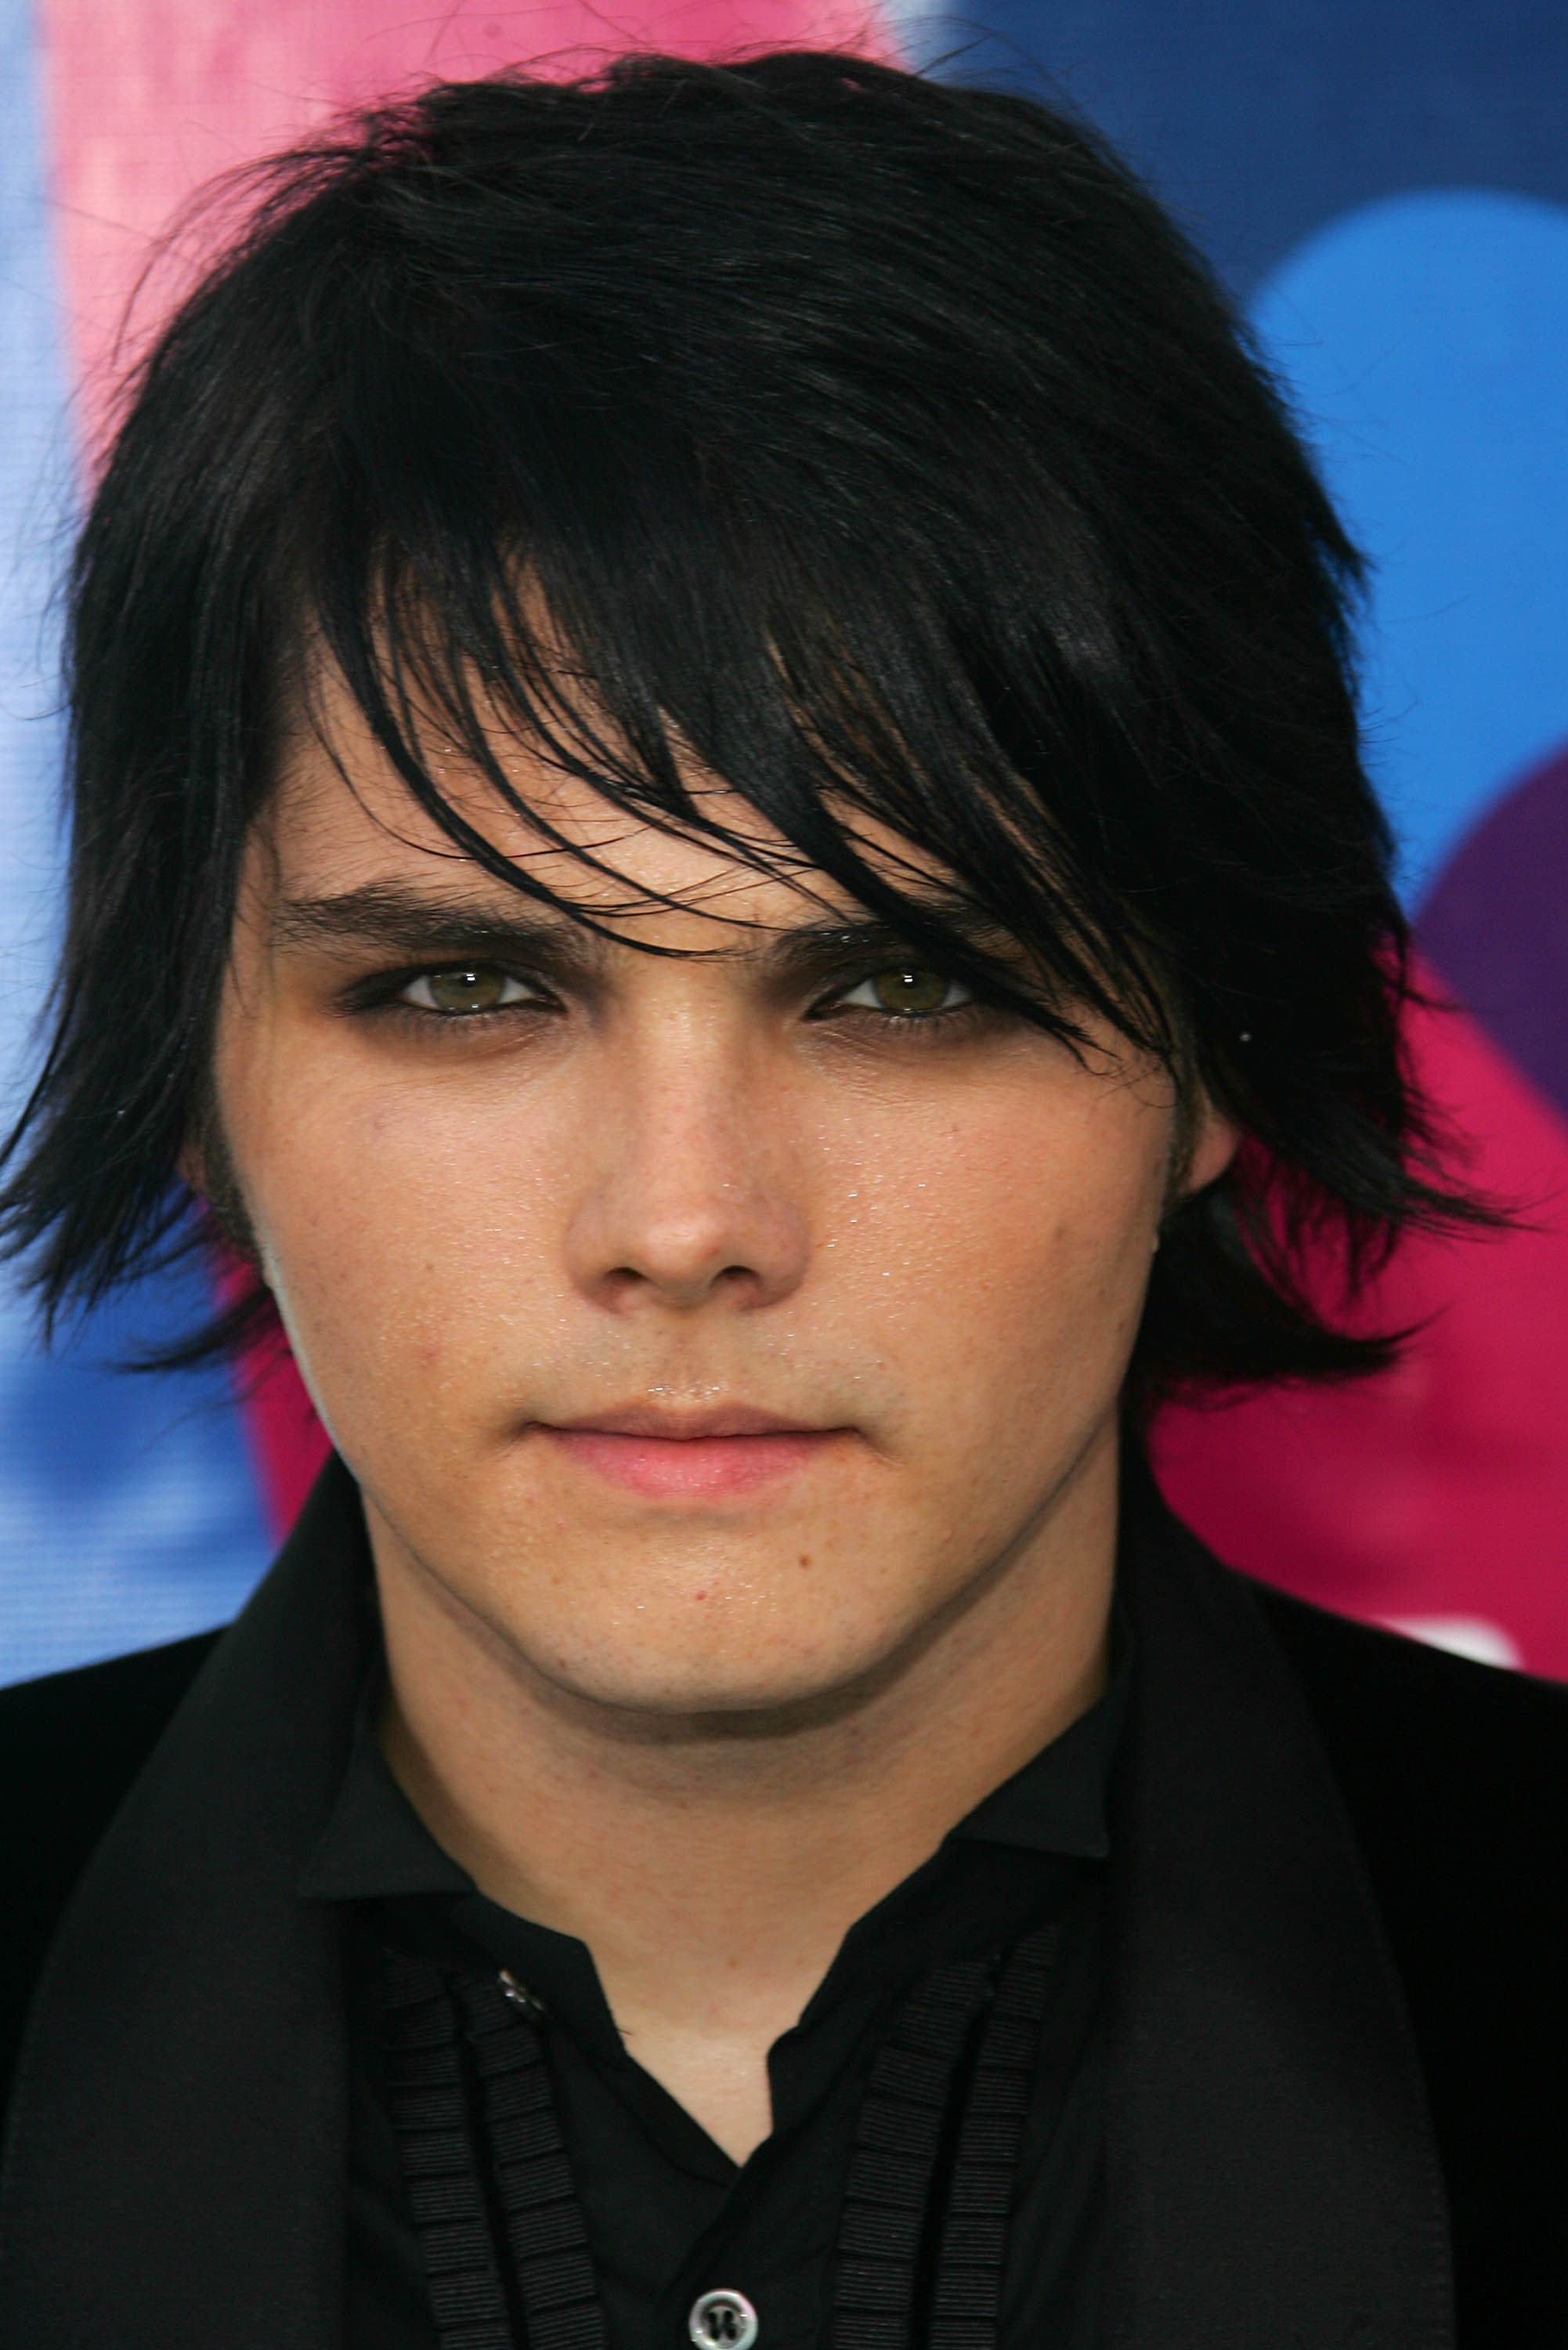 Gerard Way   Known people - famous people news and biographies